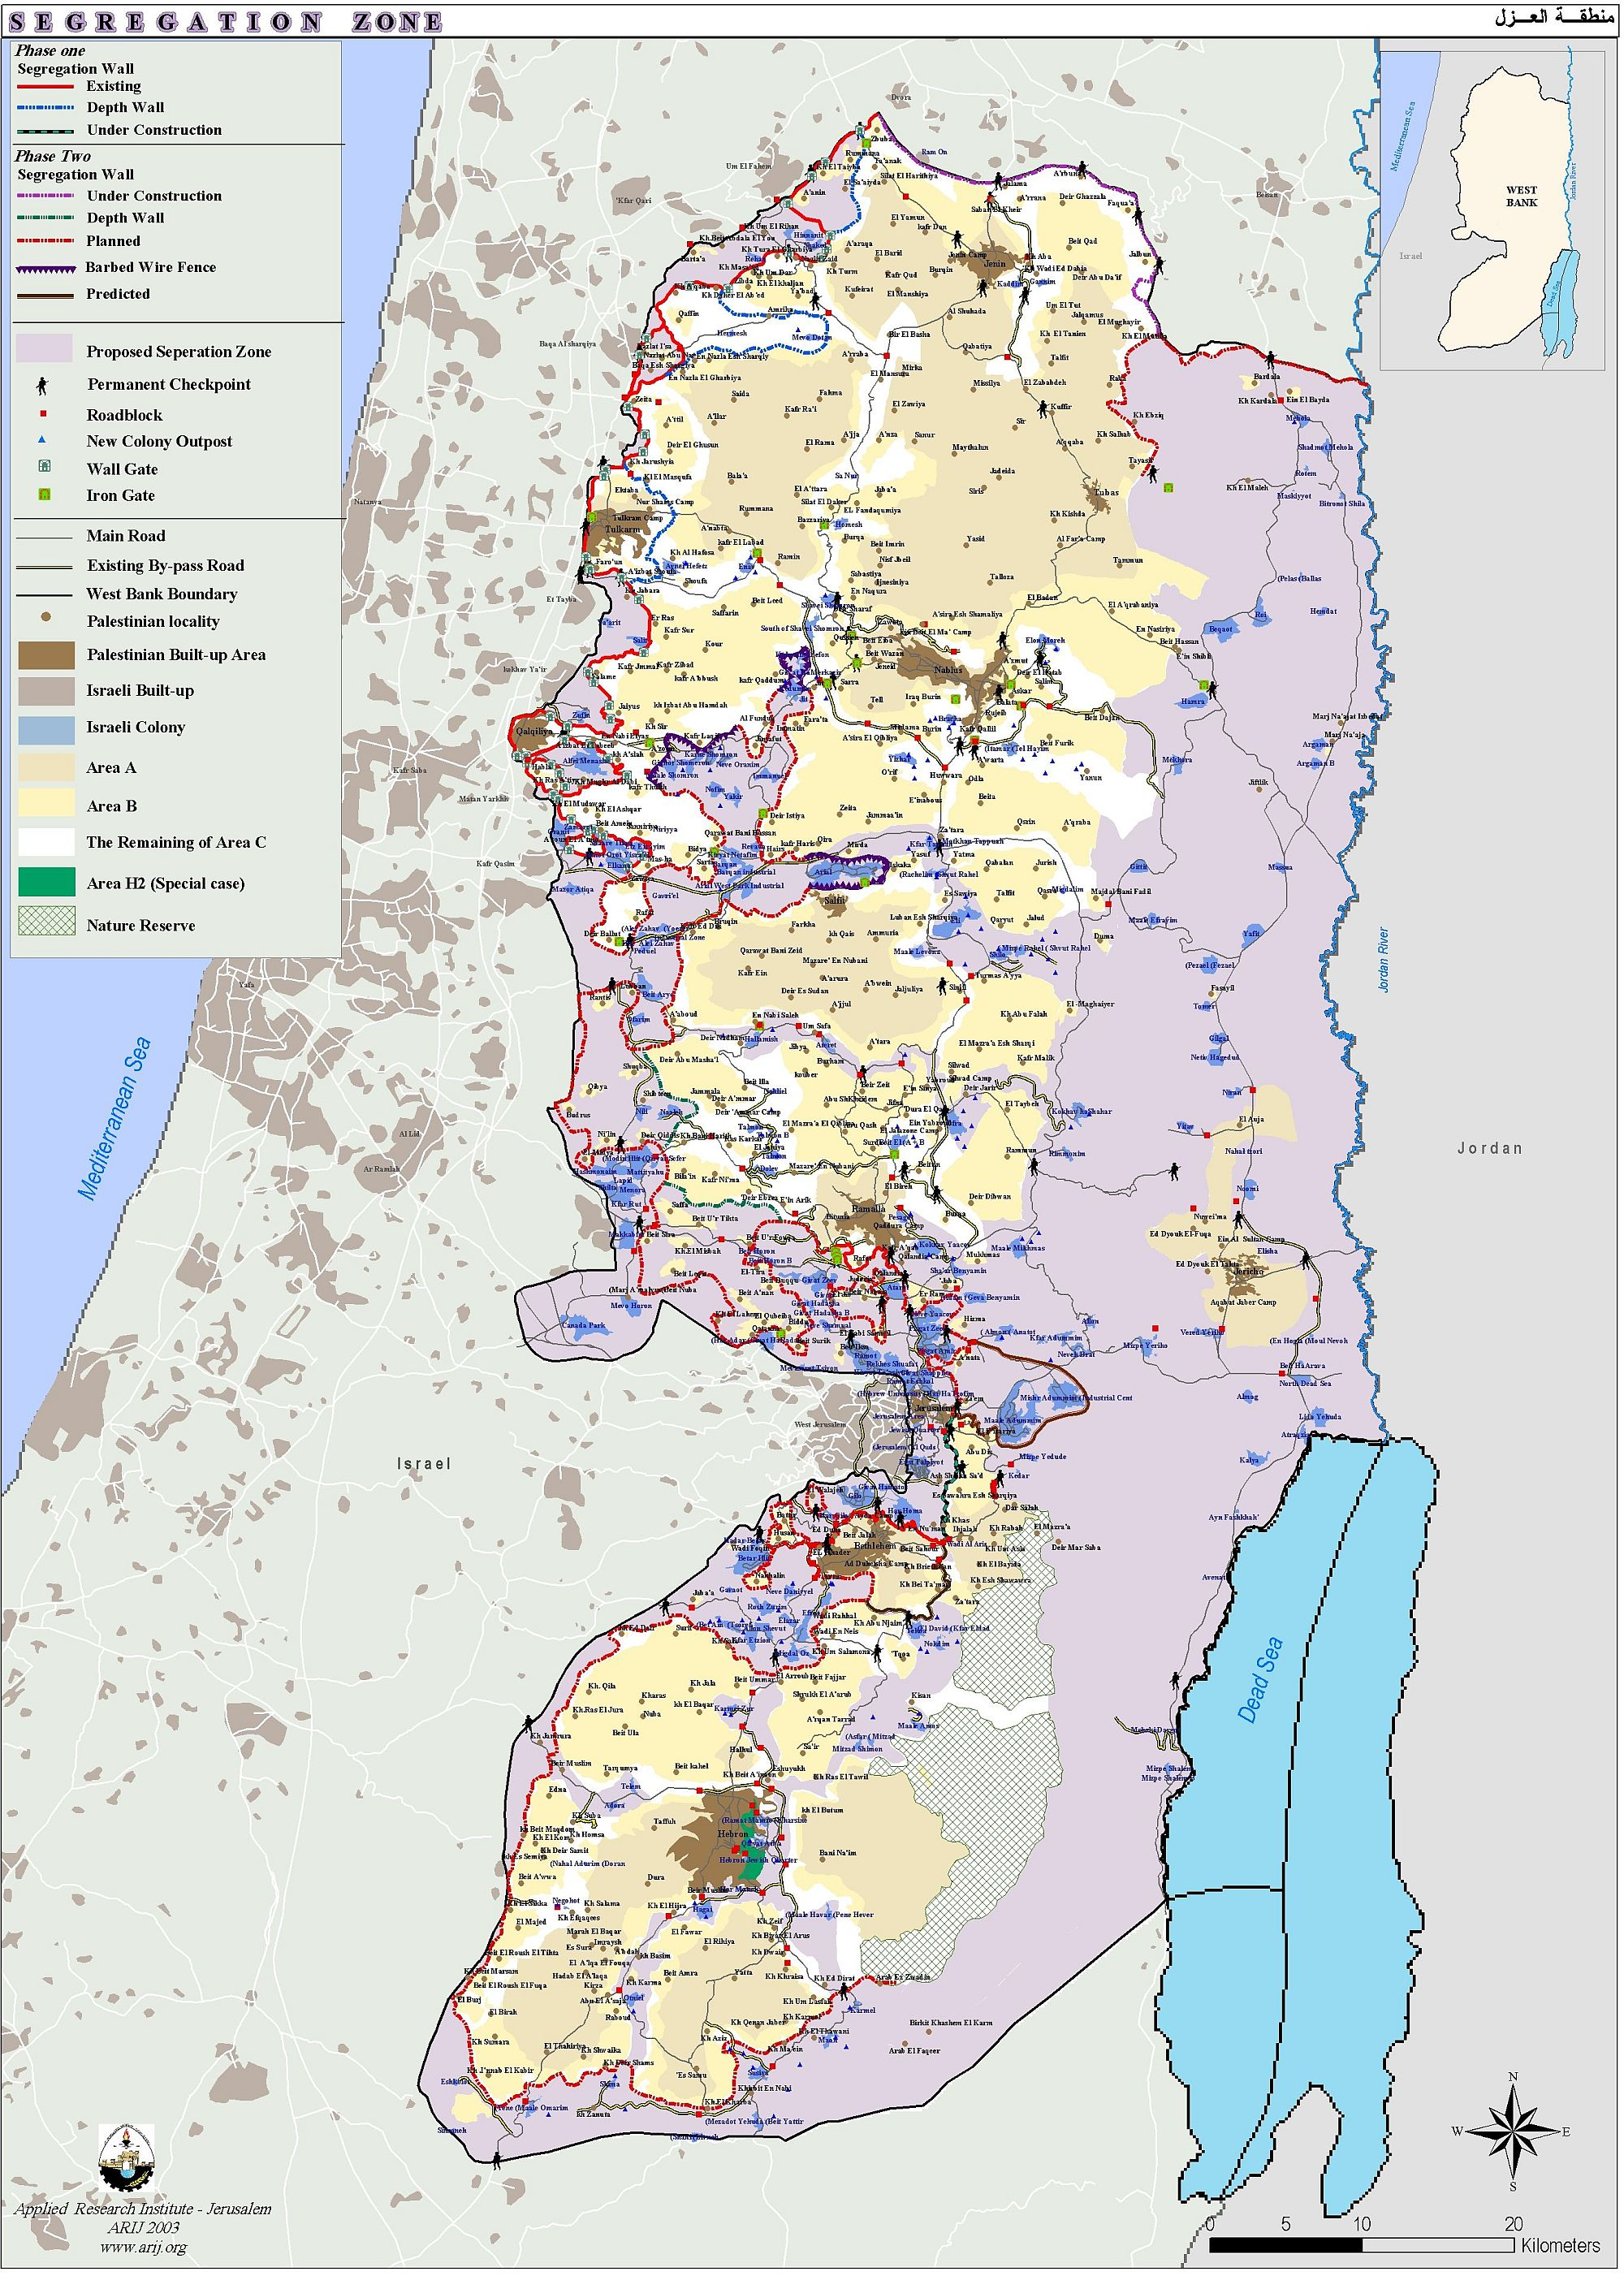 Historical Maps Of Israel And Palestine - Maps of israel